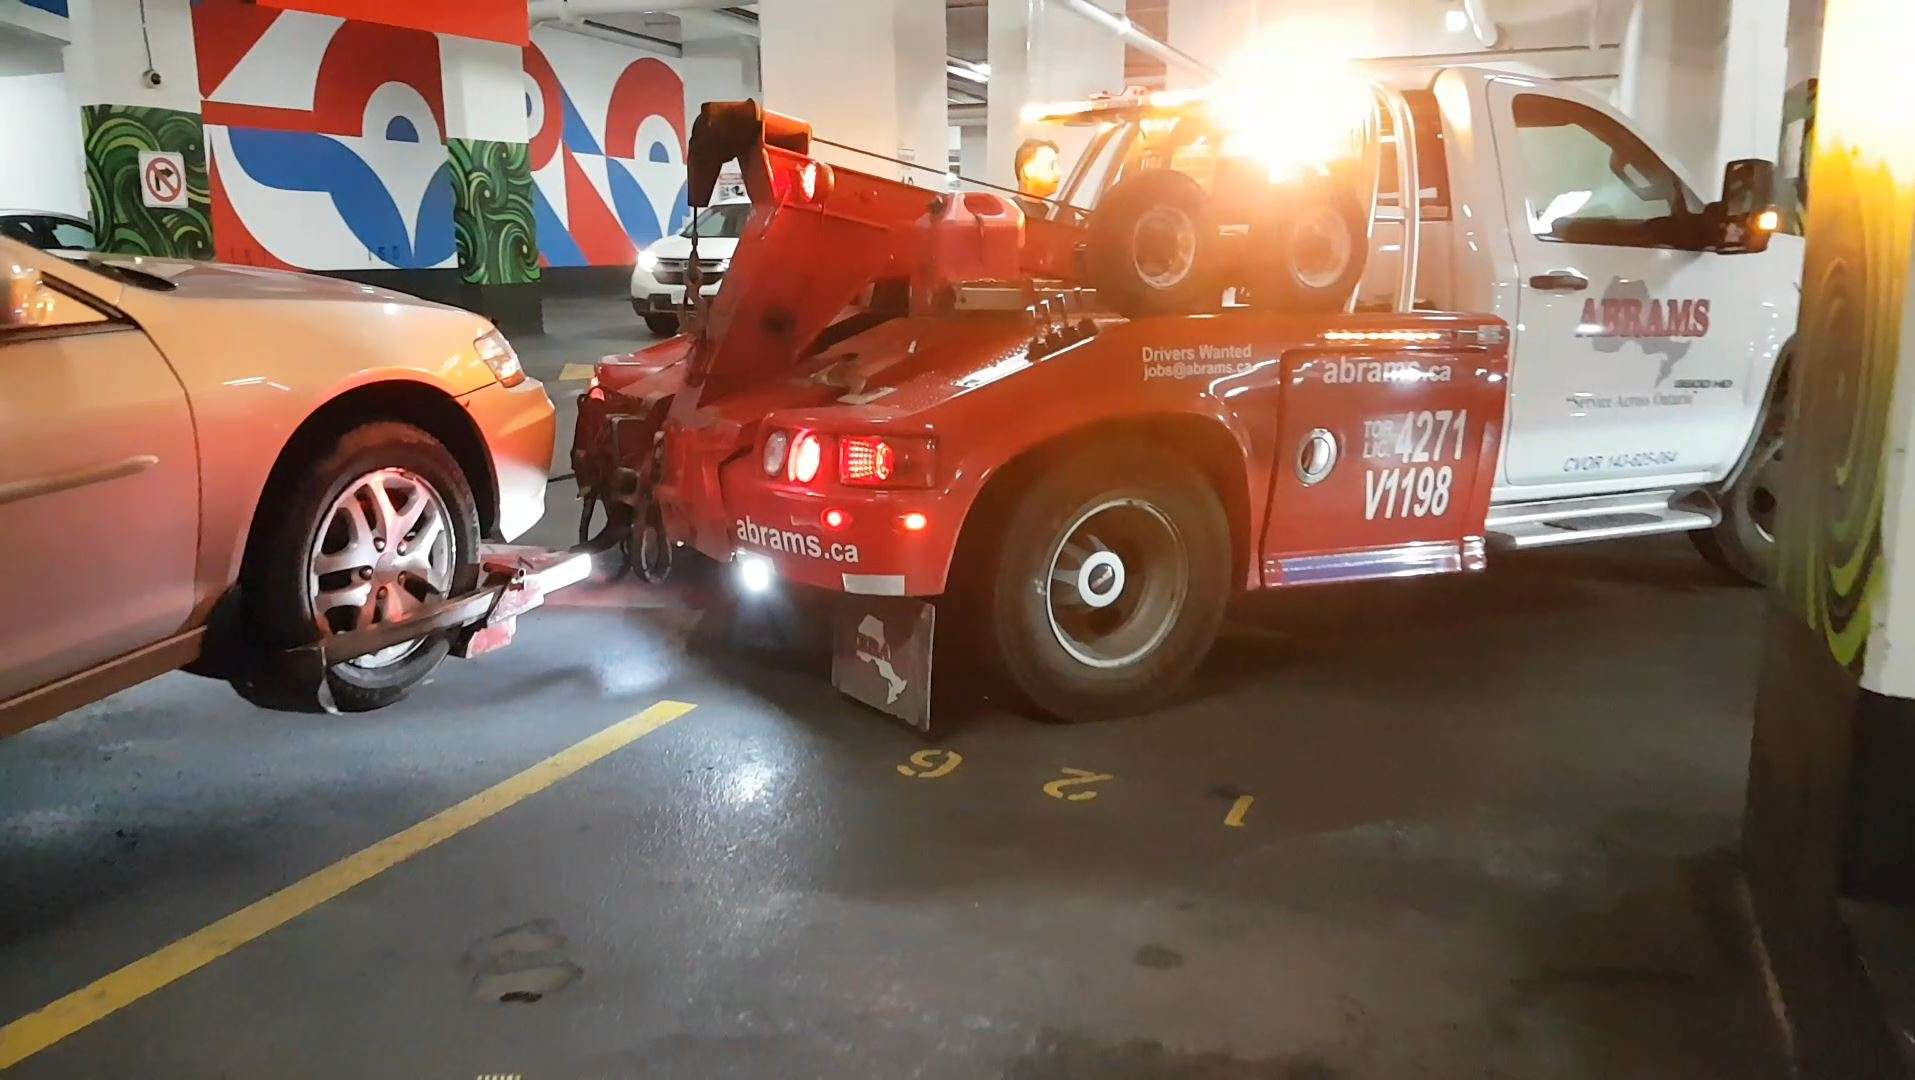 Tow truck driver pulls the car out of the parking spot